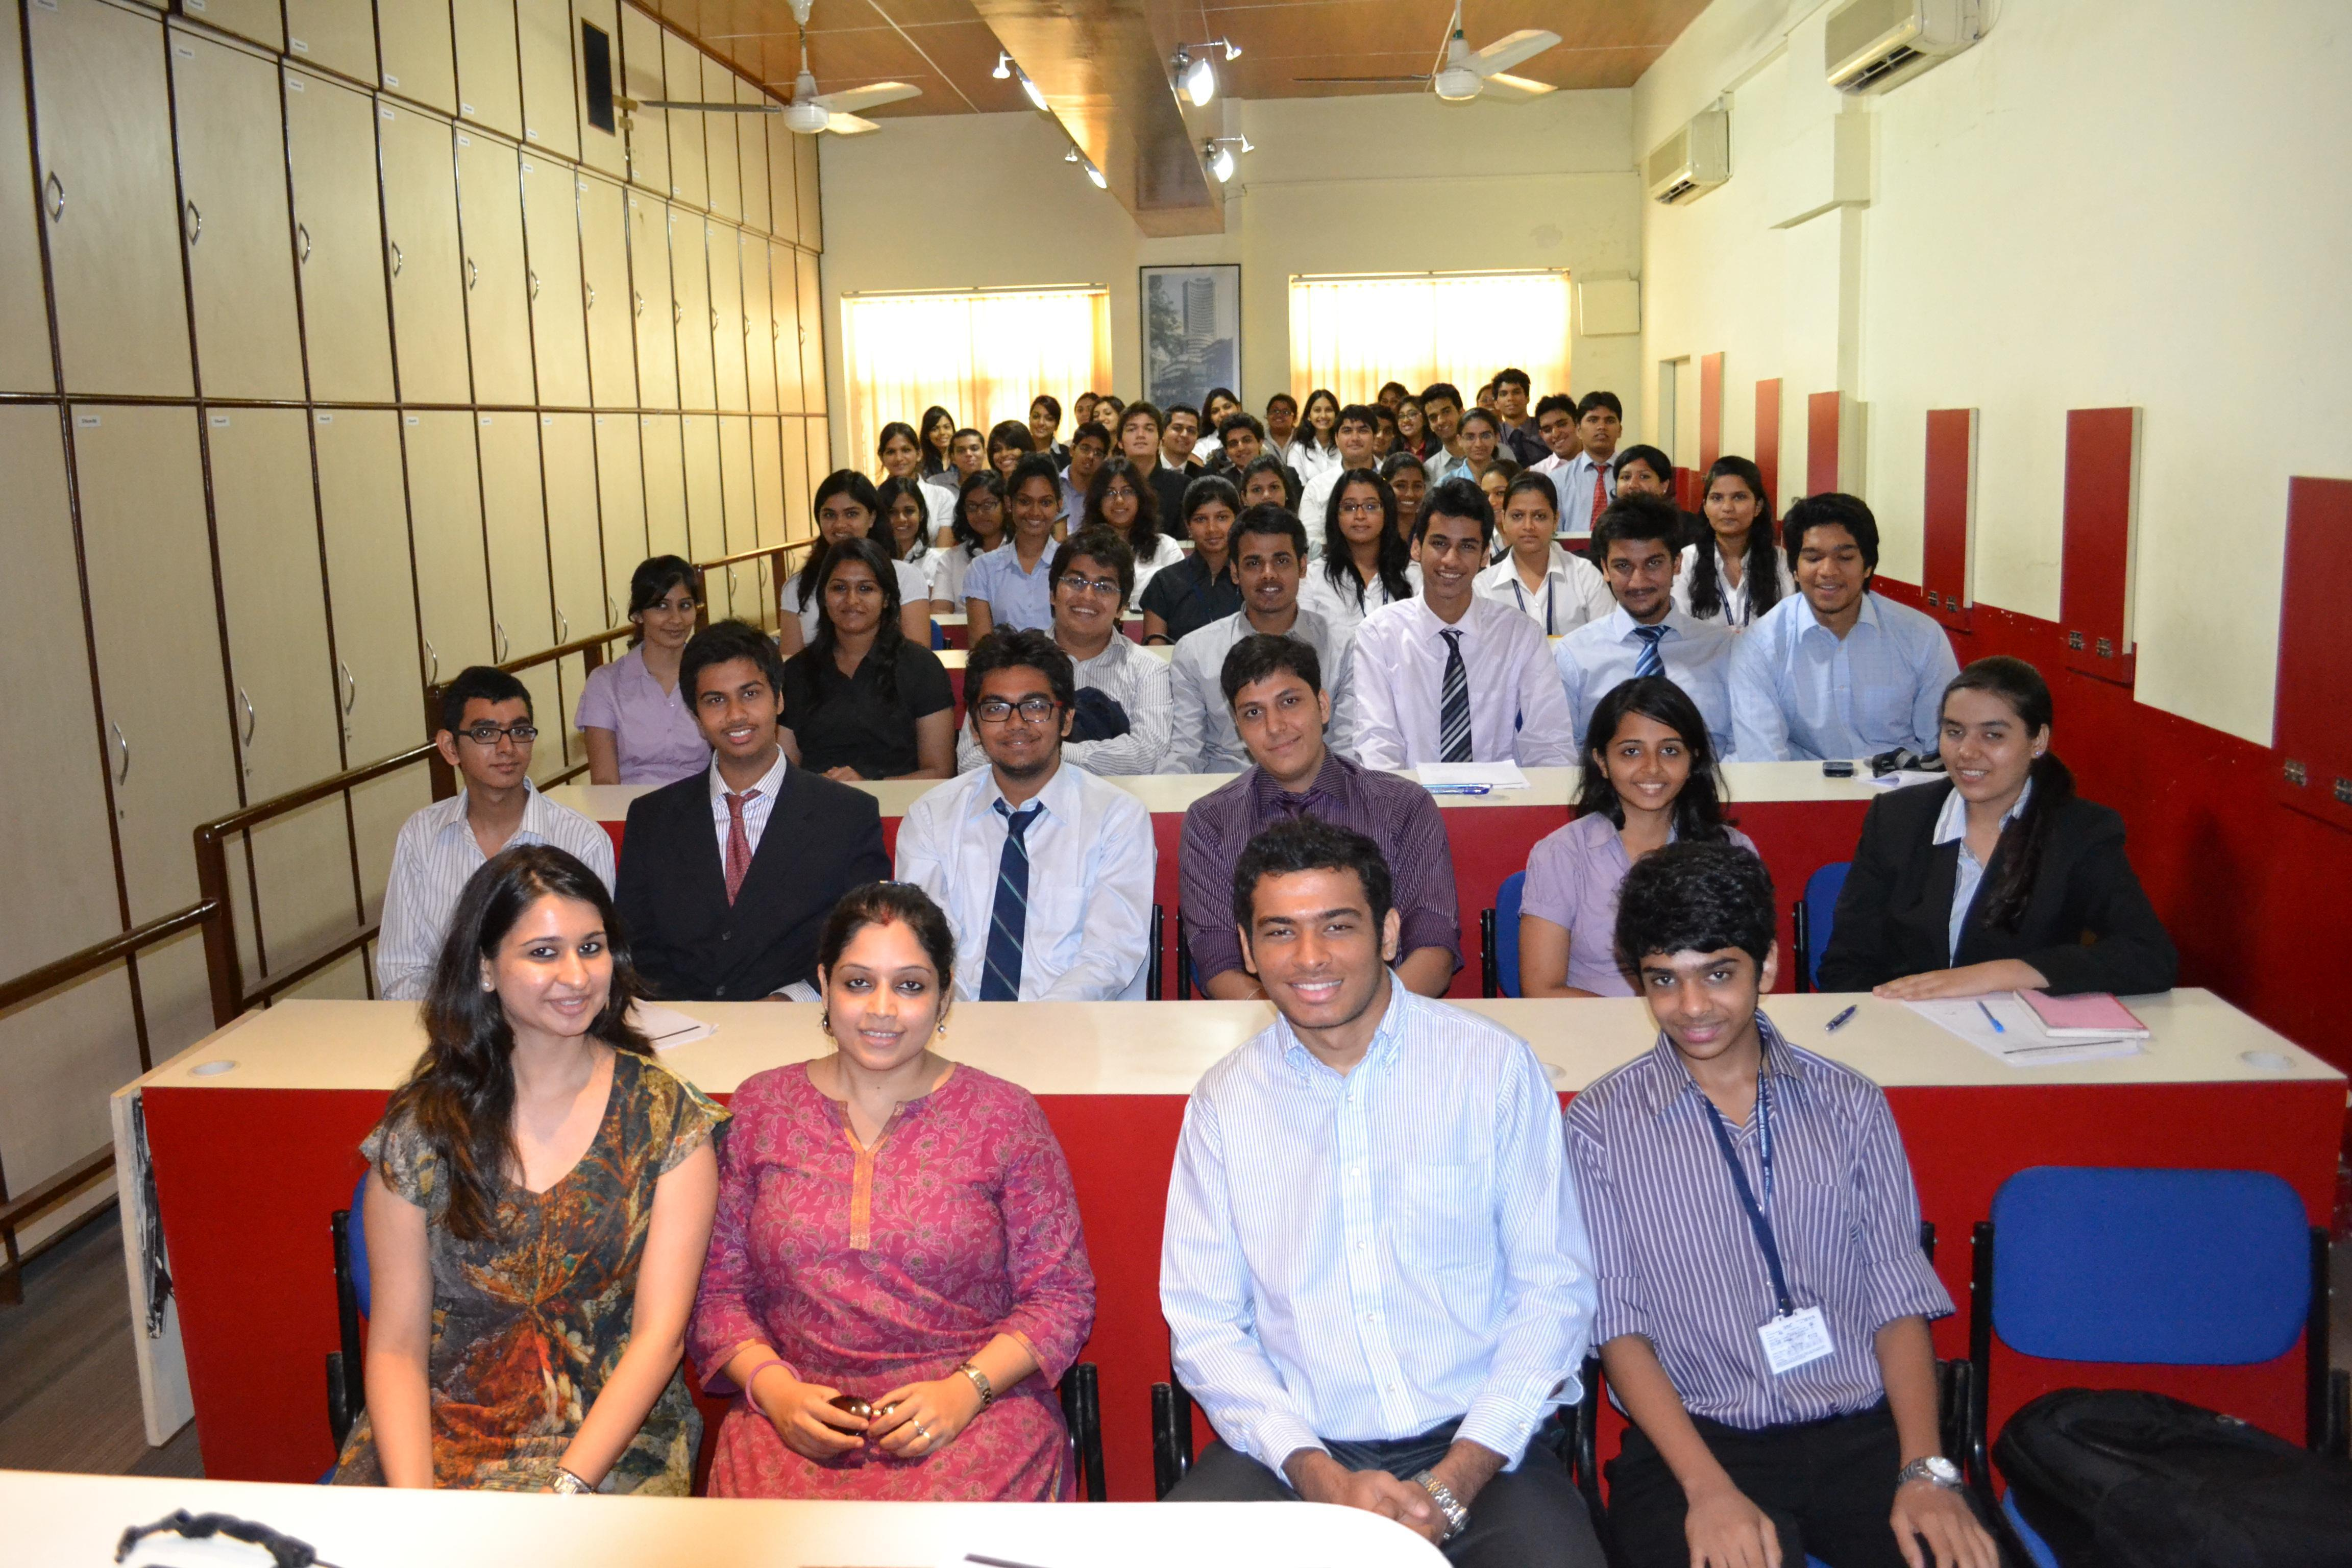 HR College of Commerce and Economics Mumbai Classroom